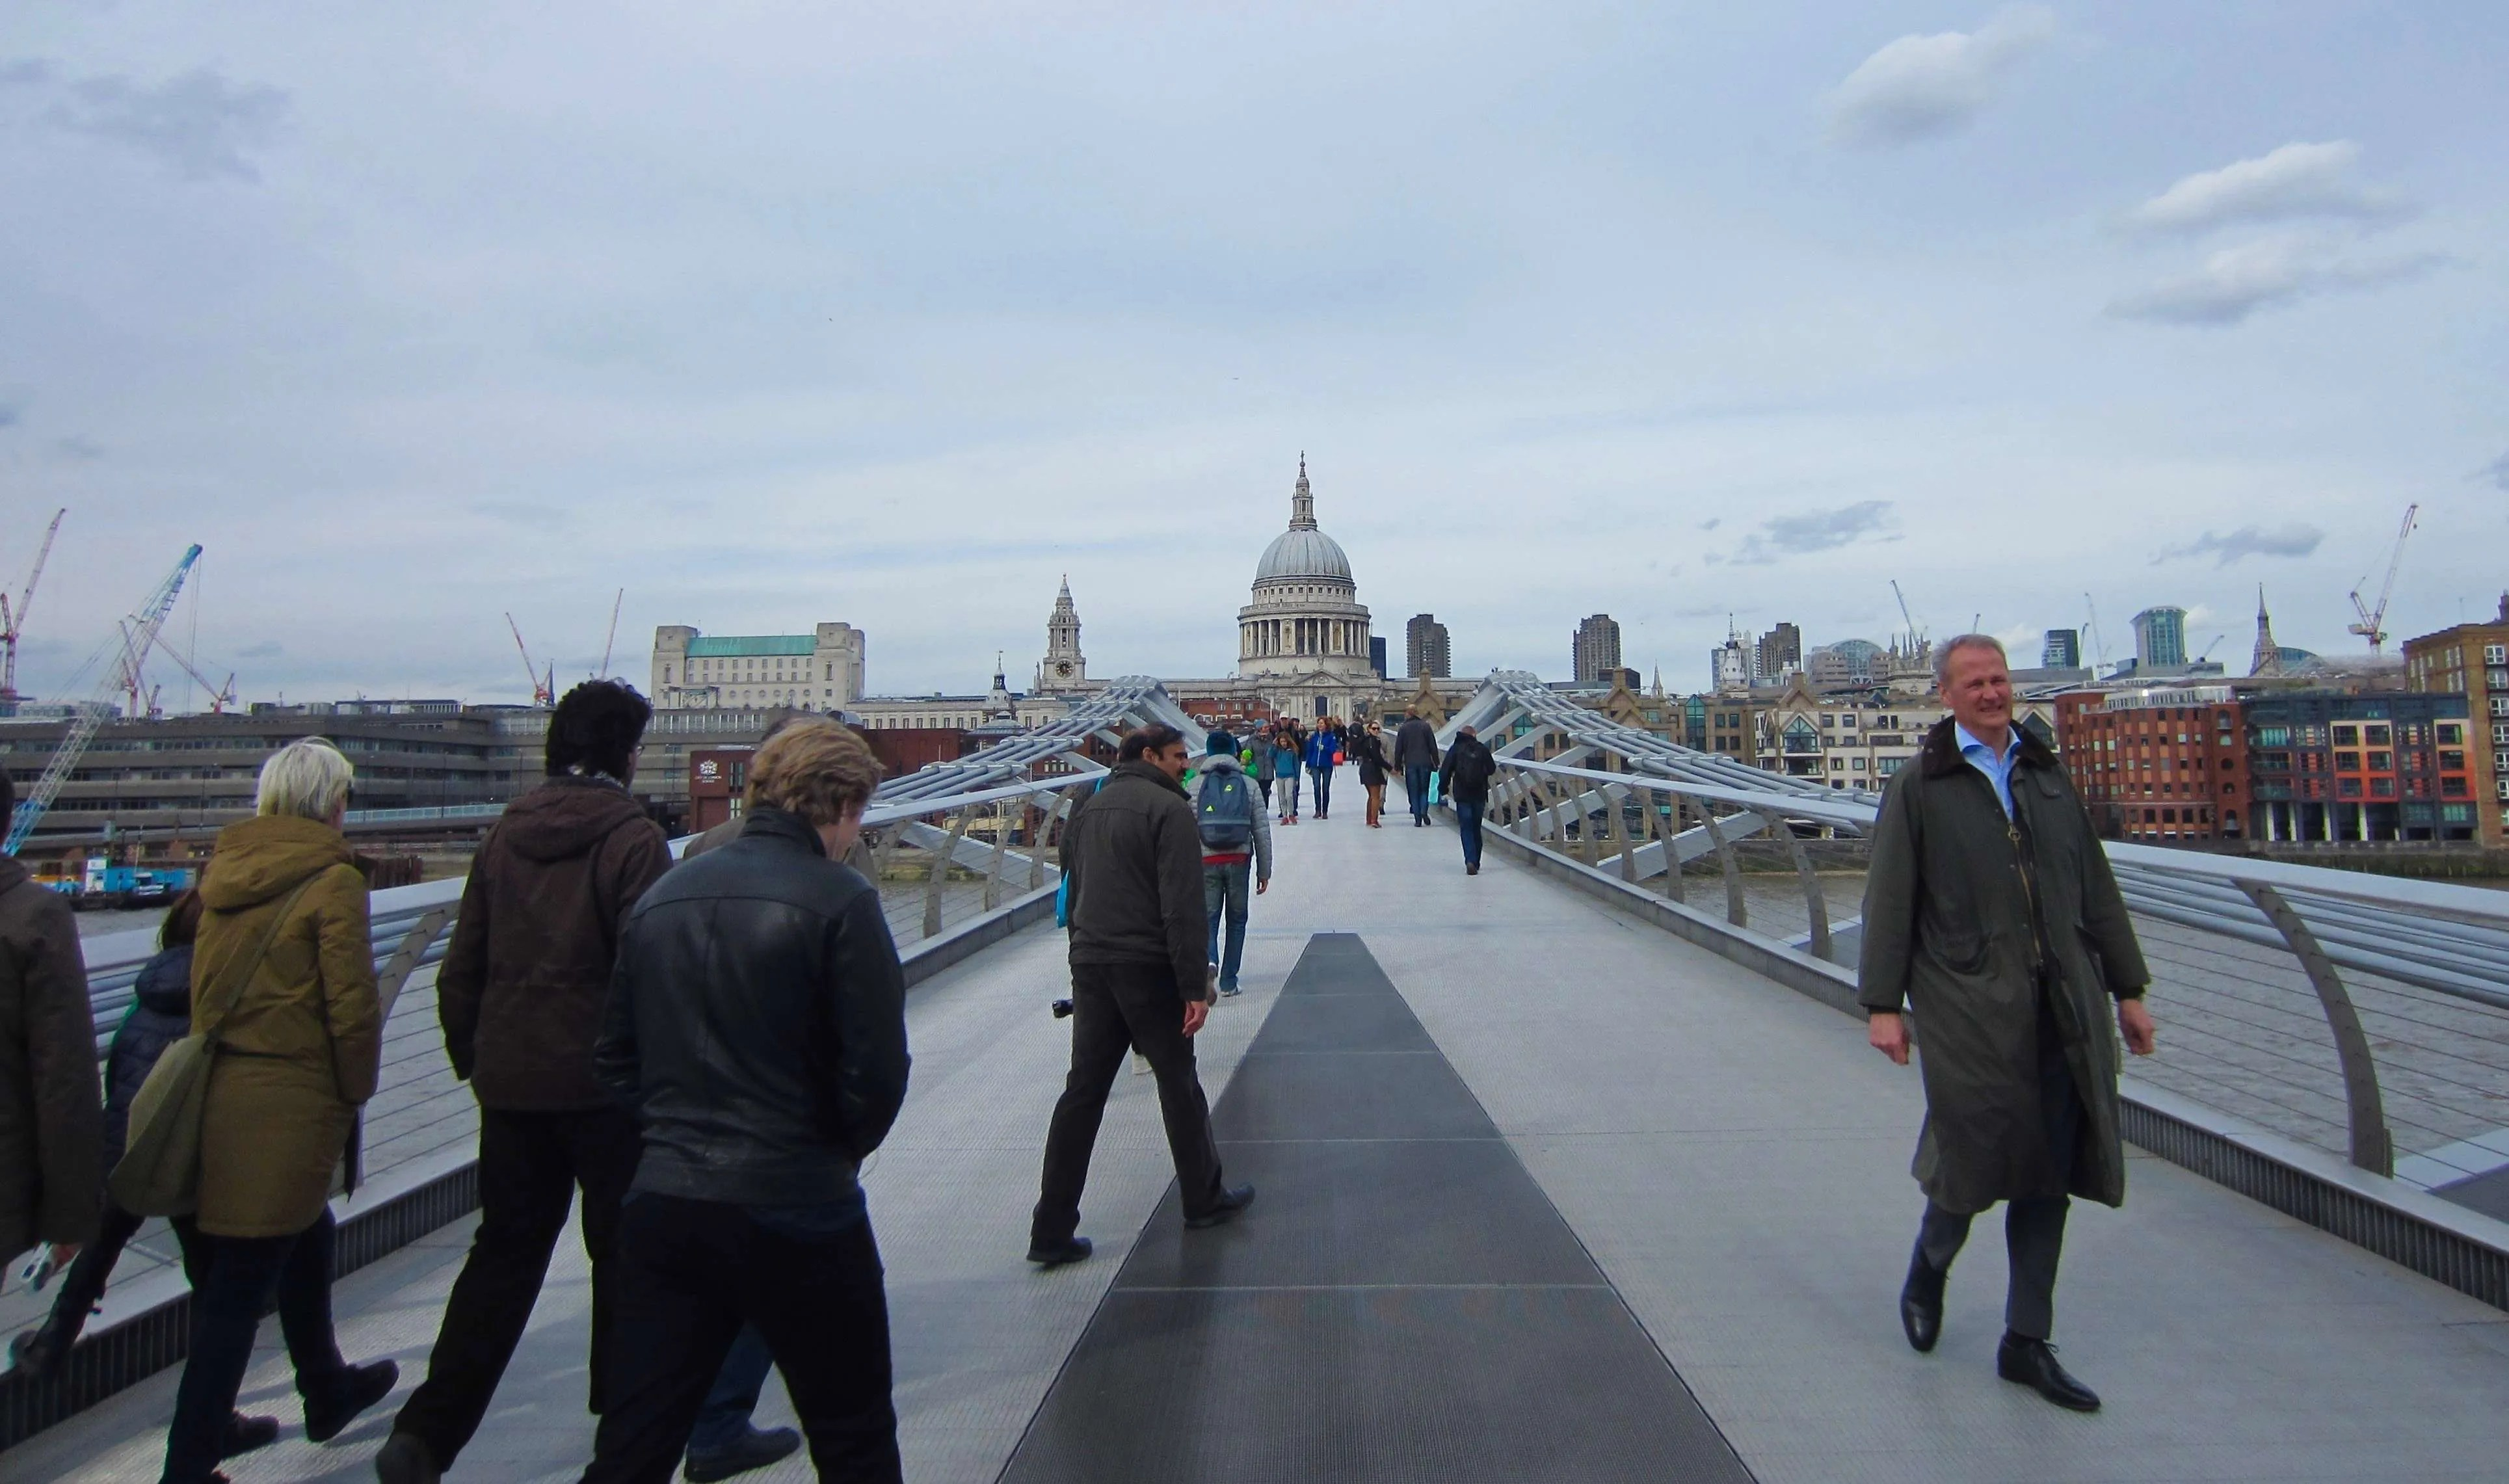 The City of London, and Millenium Bridge.